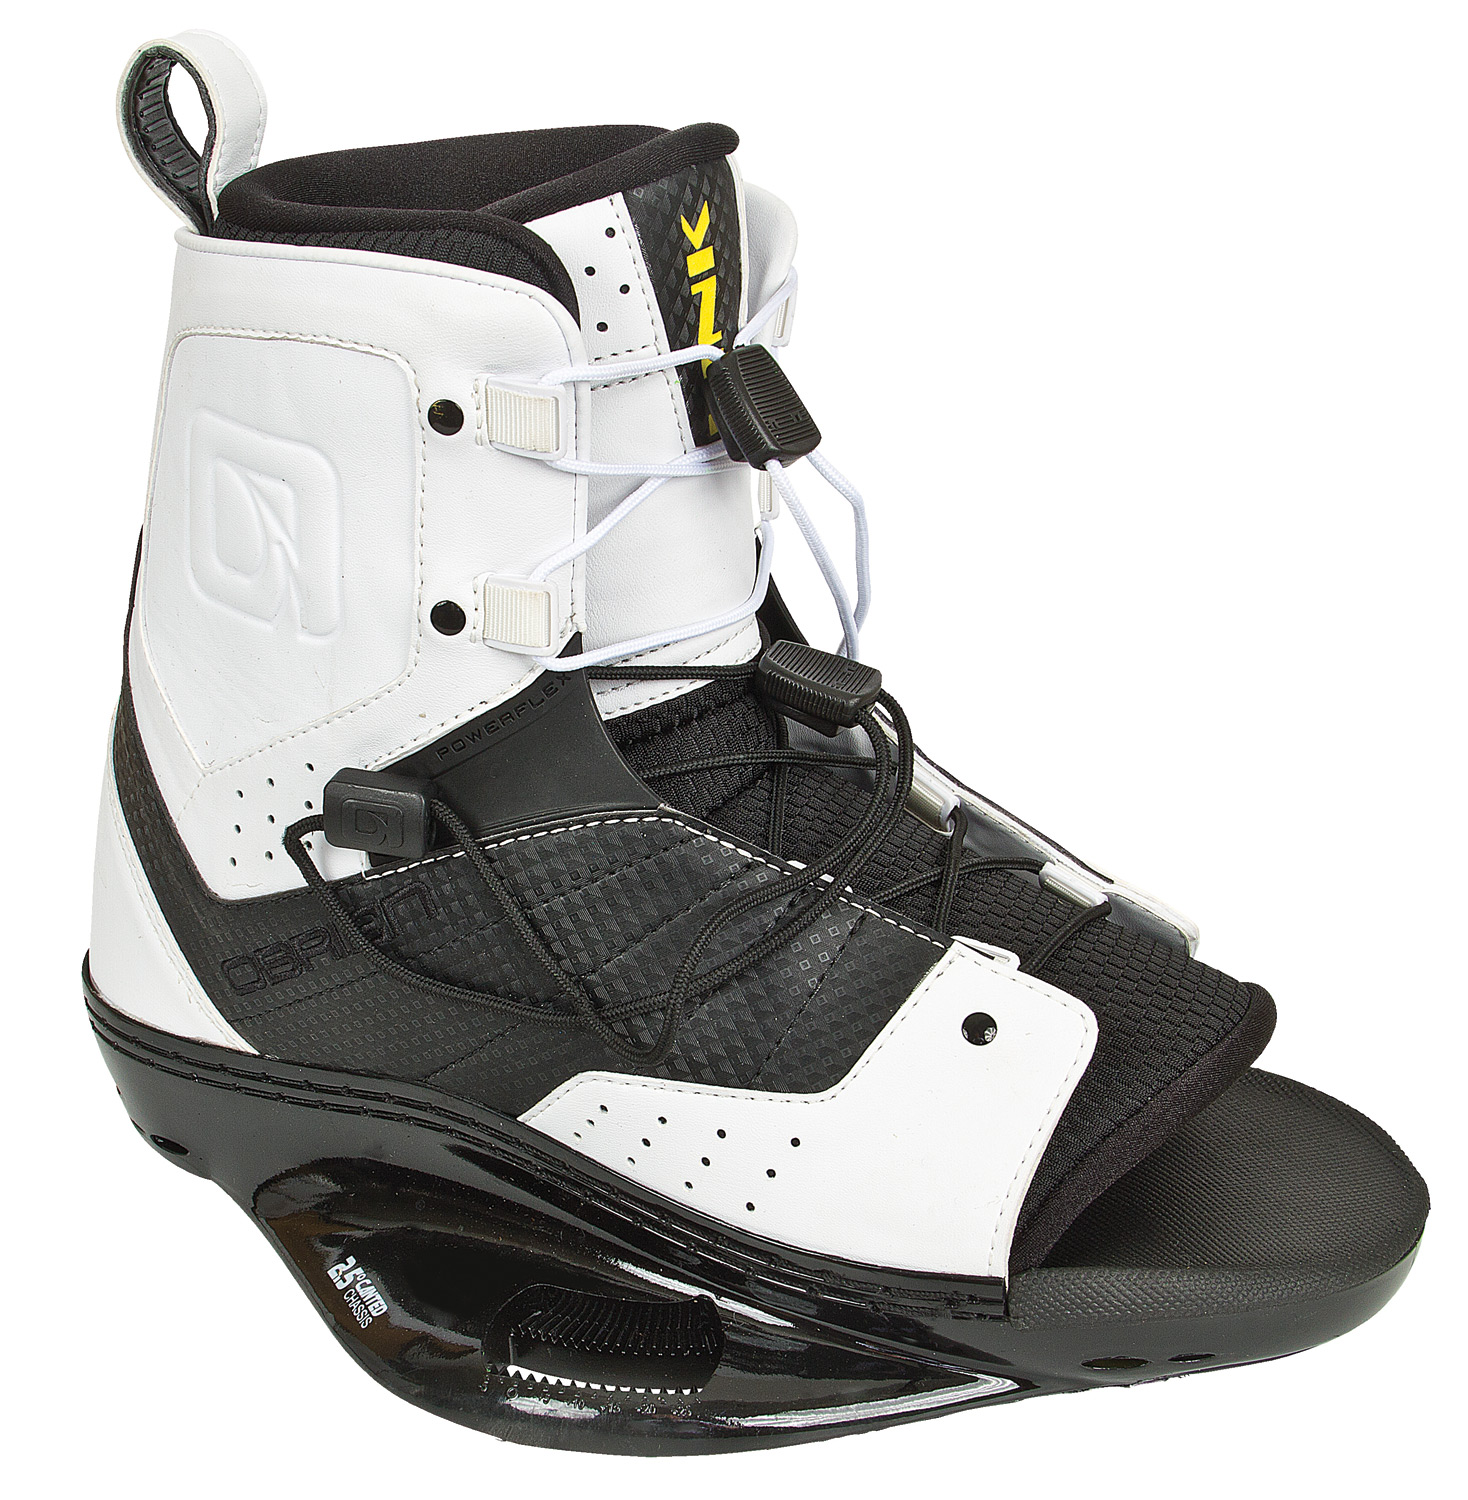 Wake Key Features of the O'Brien Link Wakeboard Bindings: Open Toe Design for more fit flexibility. New for 2012 Lux Chassis - our lightest & most rigid chassis ever, maximum comfort, response, and no heel / toe lift. Strobel Lasted Liner. Fixed Off-Axis plate. CMEVA Outsole. - $119.95